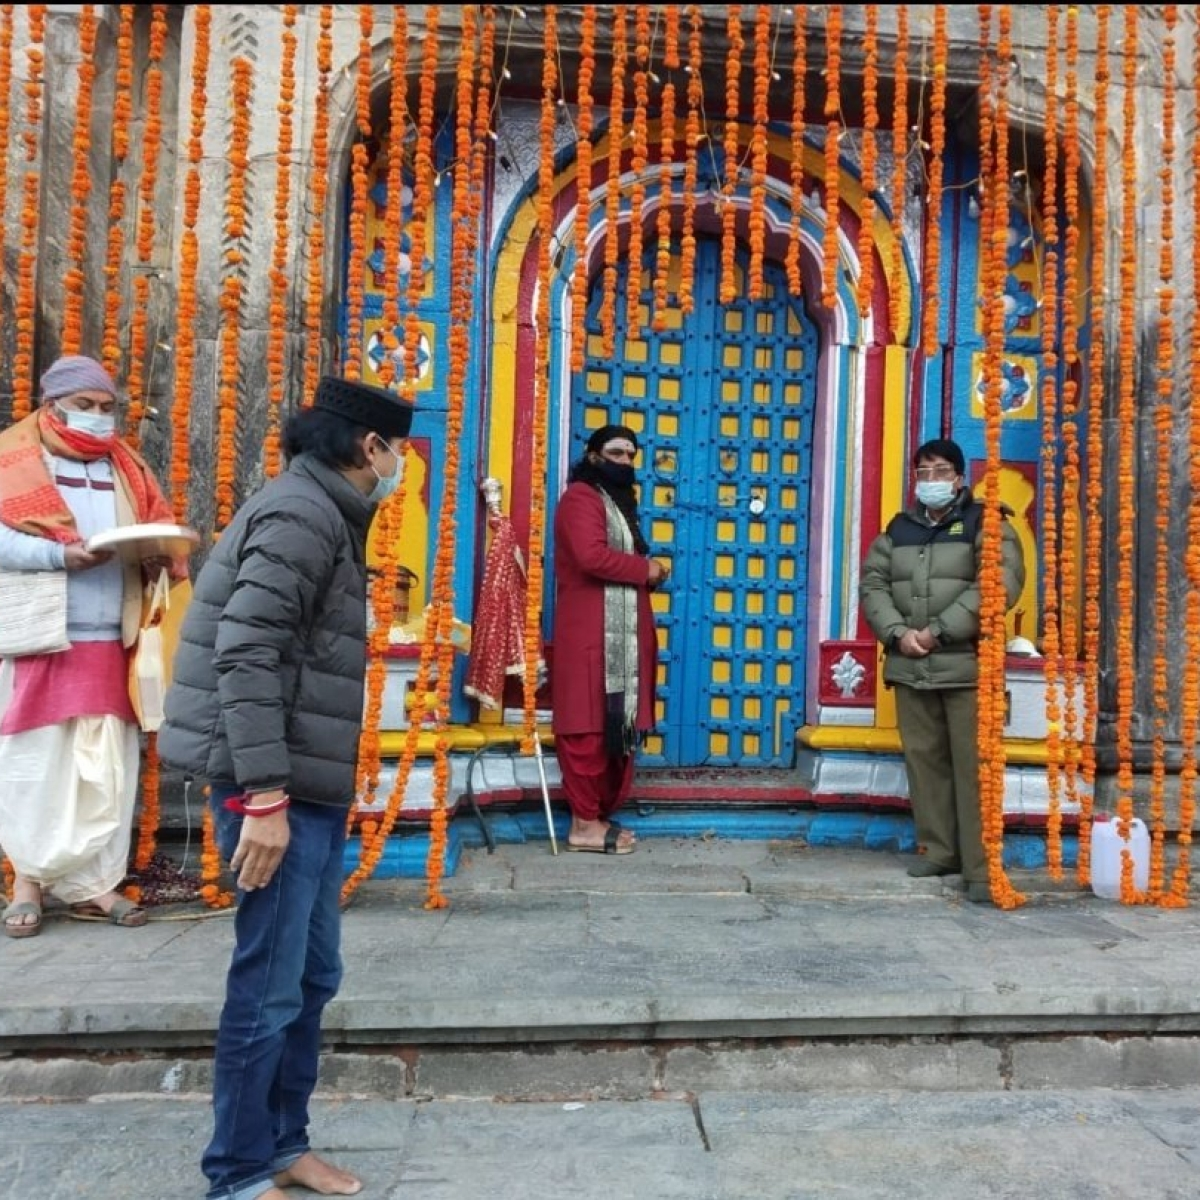 Over 20 lakh people involved in Uttarakhand tourism affected due to lockdown